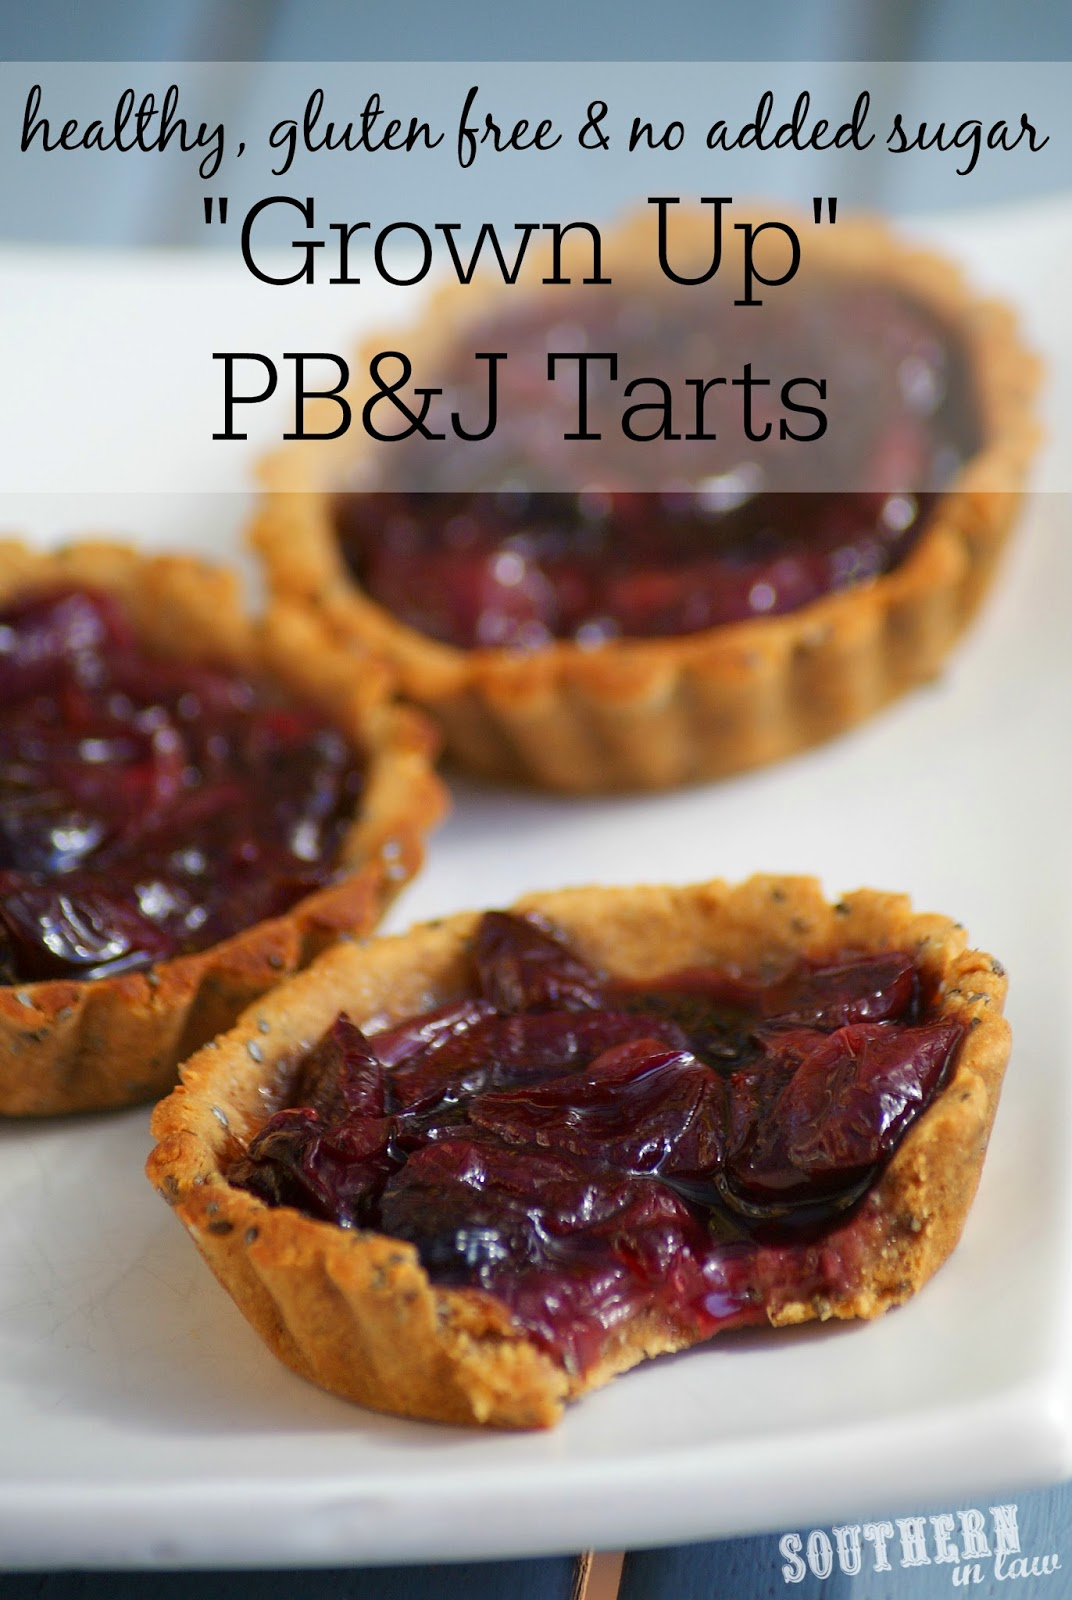 Grown Up Healthy PB&J Tarts Recipe - gluten free, refined sugar free, clean eating friendly, healthy, low fat